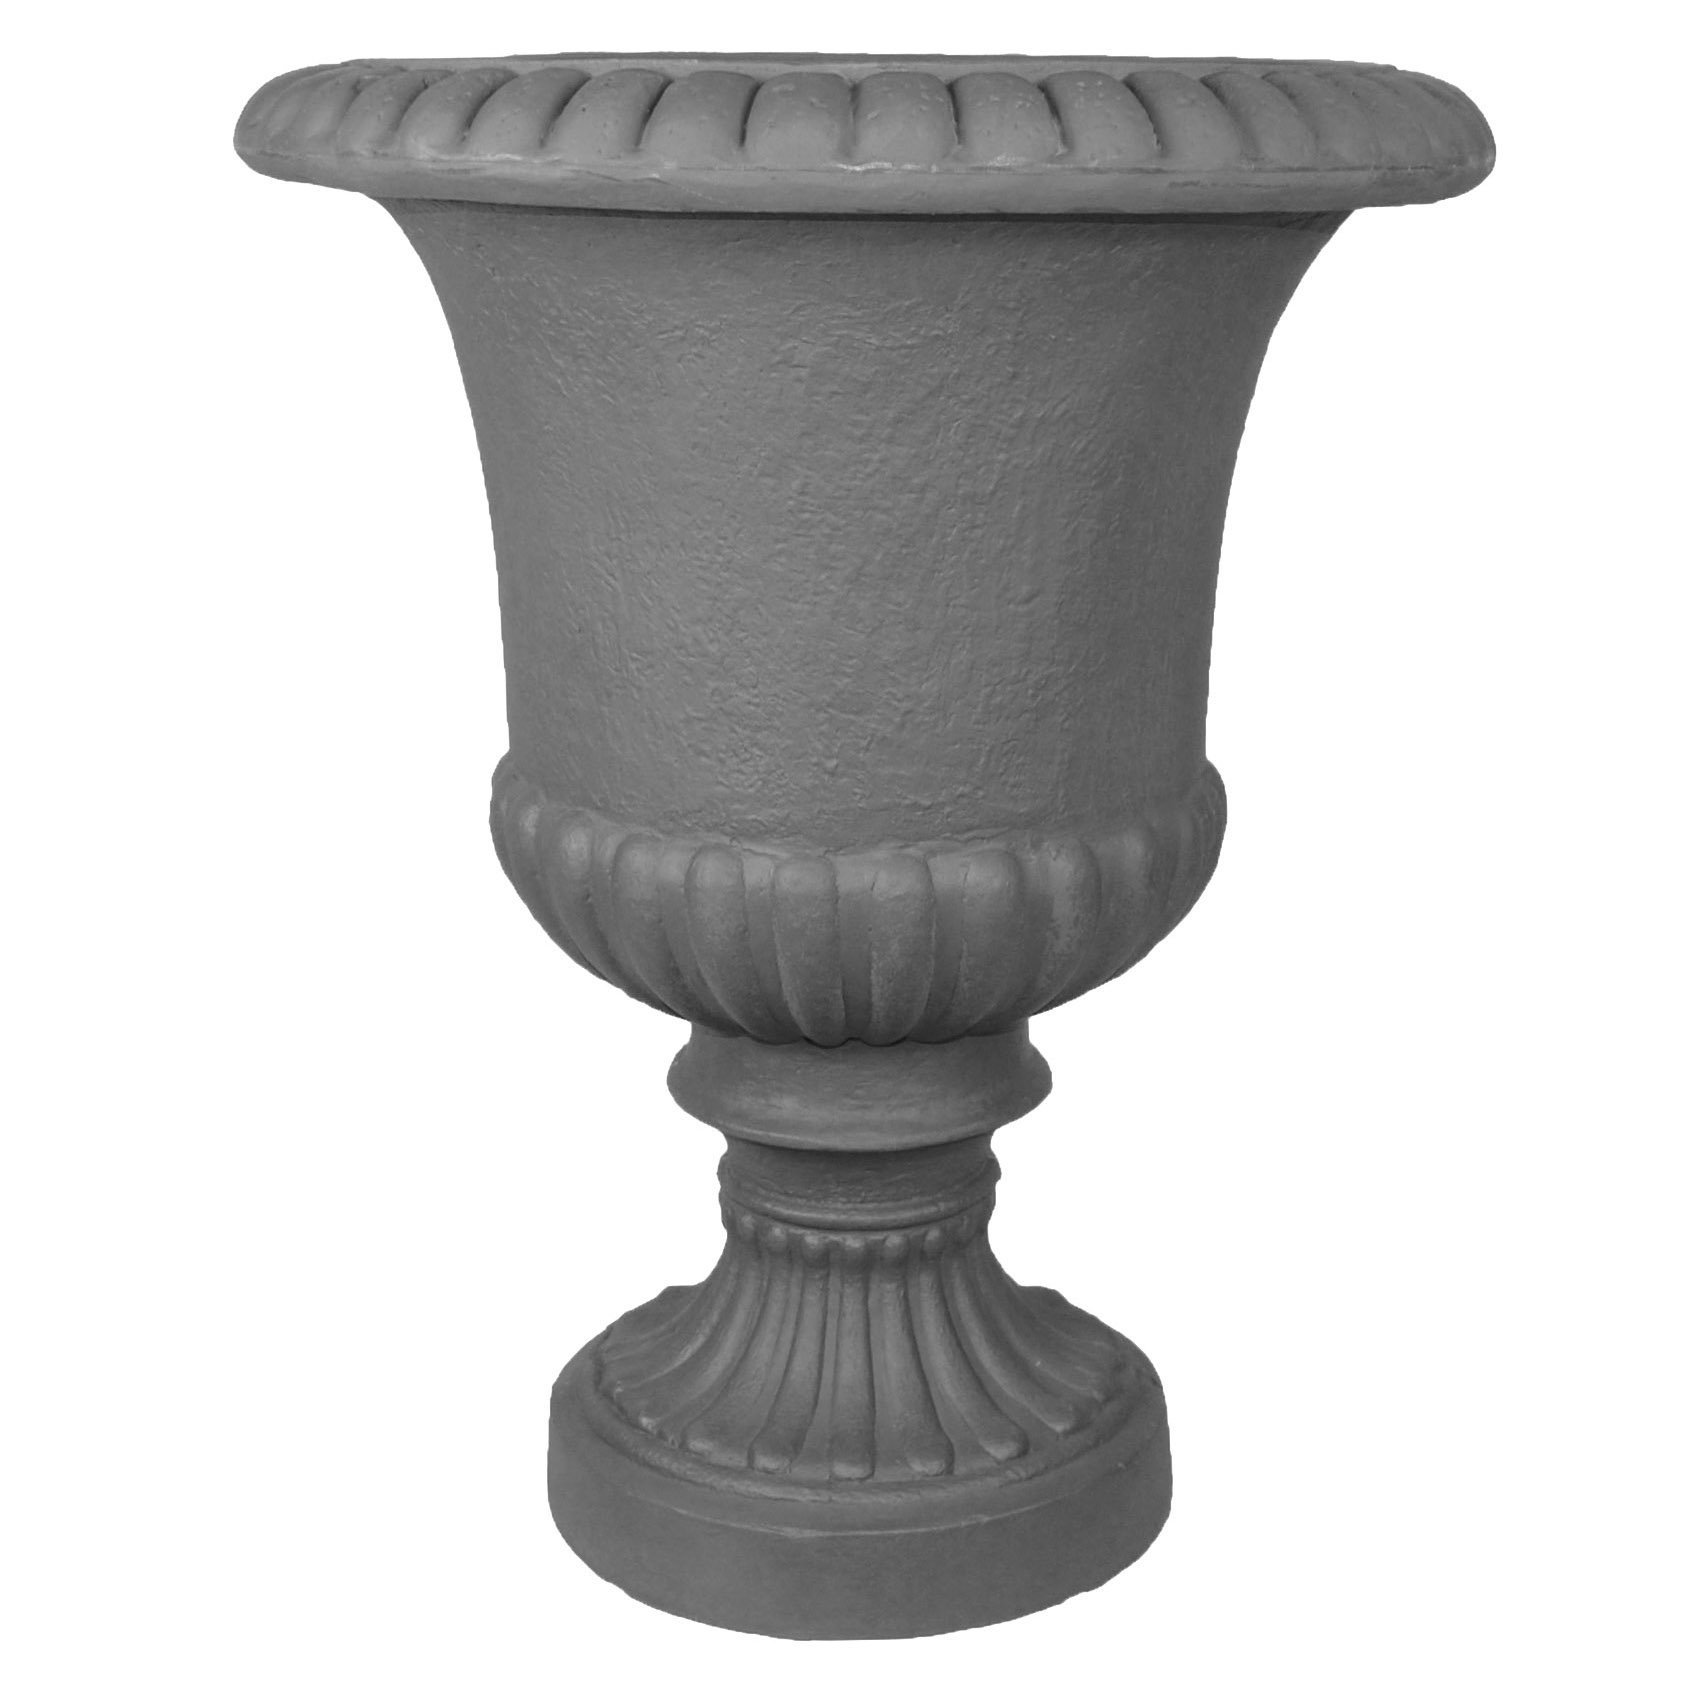 Tusco UR22SL Urn, 22'', Slate by Tusco Products